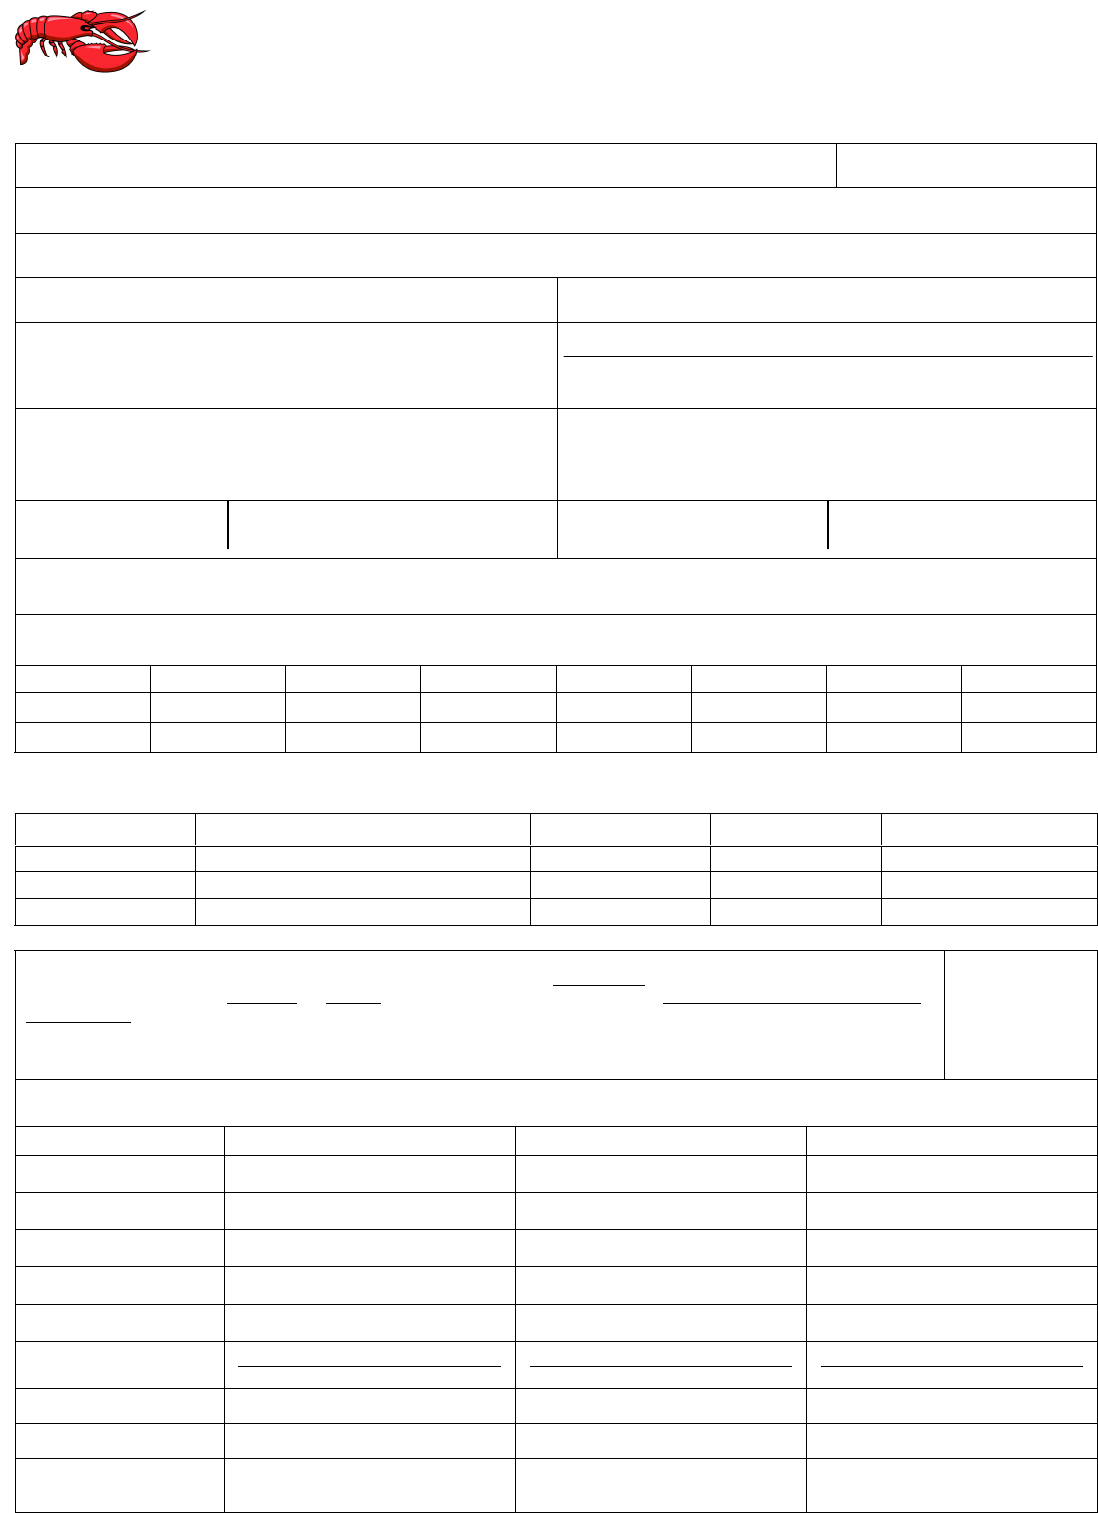 Free Printable Red Lobster Job Application Form